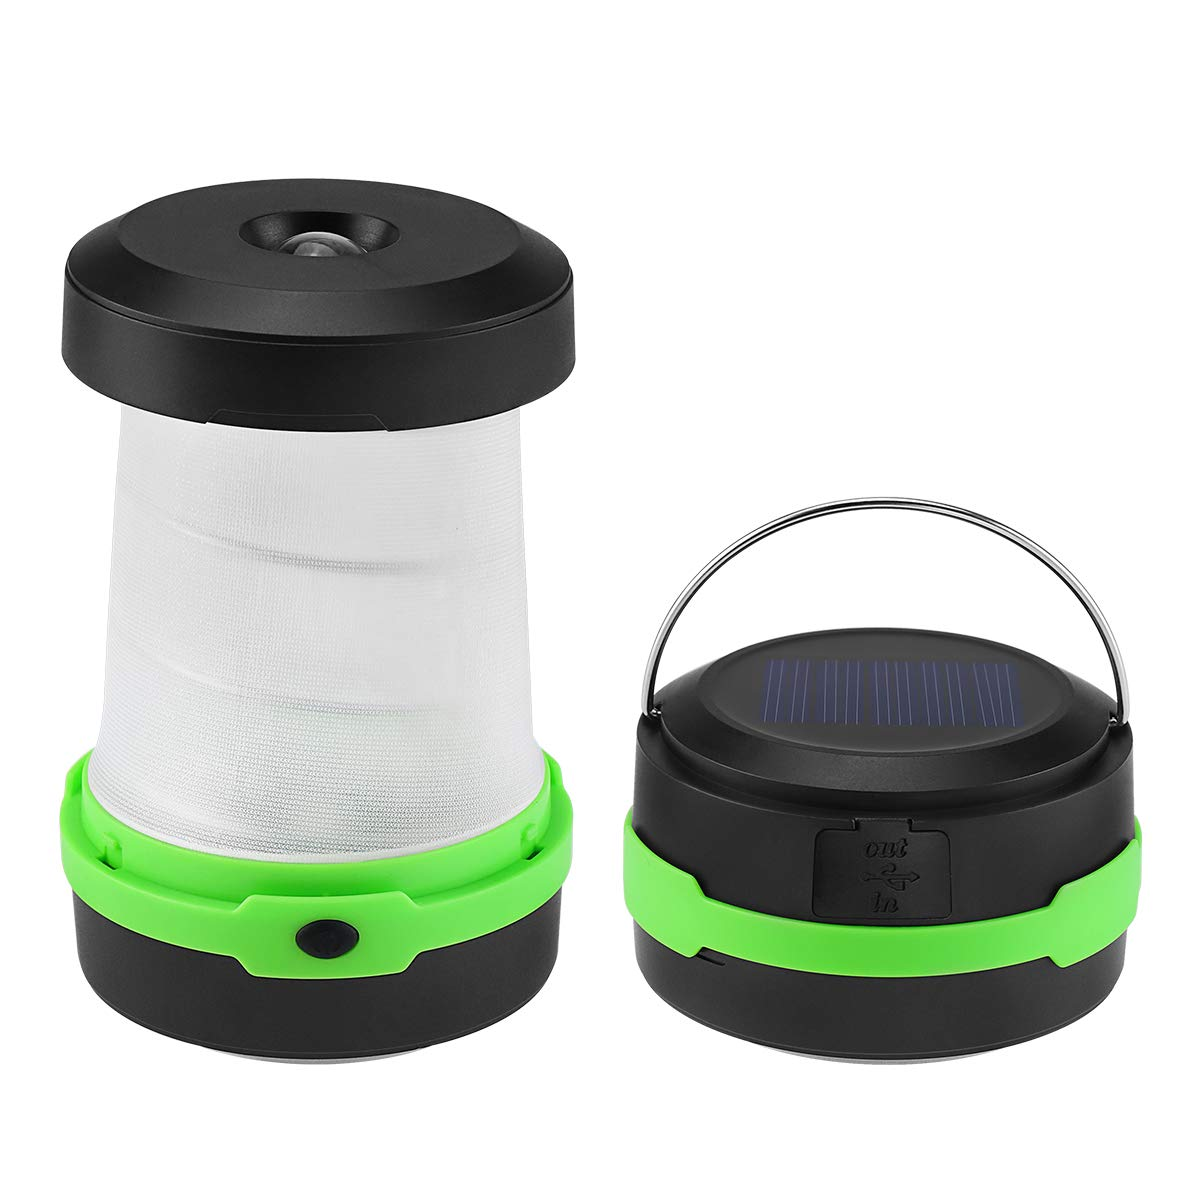 Solar LED Camping Lantern Lights, Solar Powered USB Rechargeable, 3 Lighting Modes, Portable Collapsible Flashlight Emergency Charger for Phone, Great for Outdoors Camping Hiking Tent